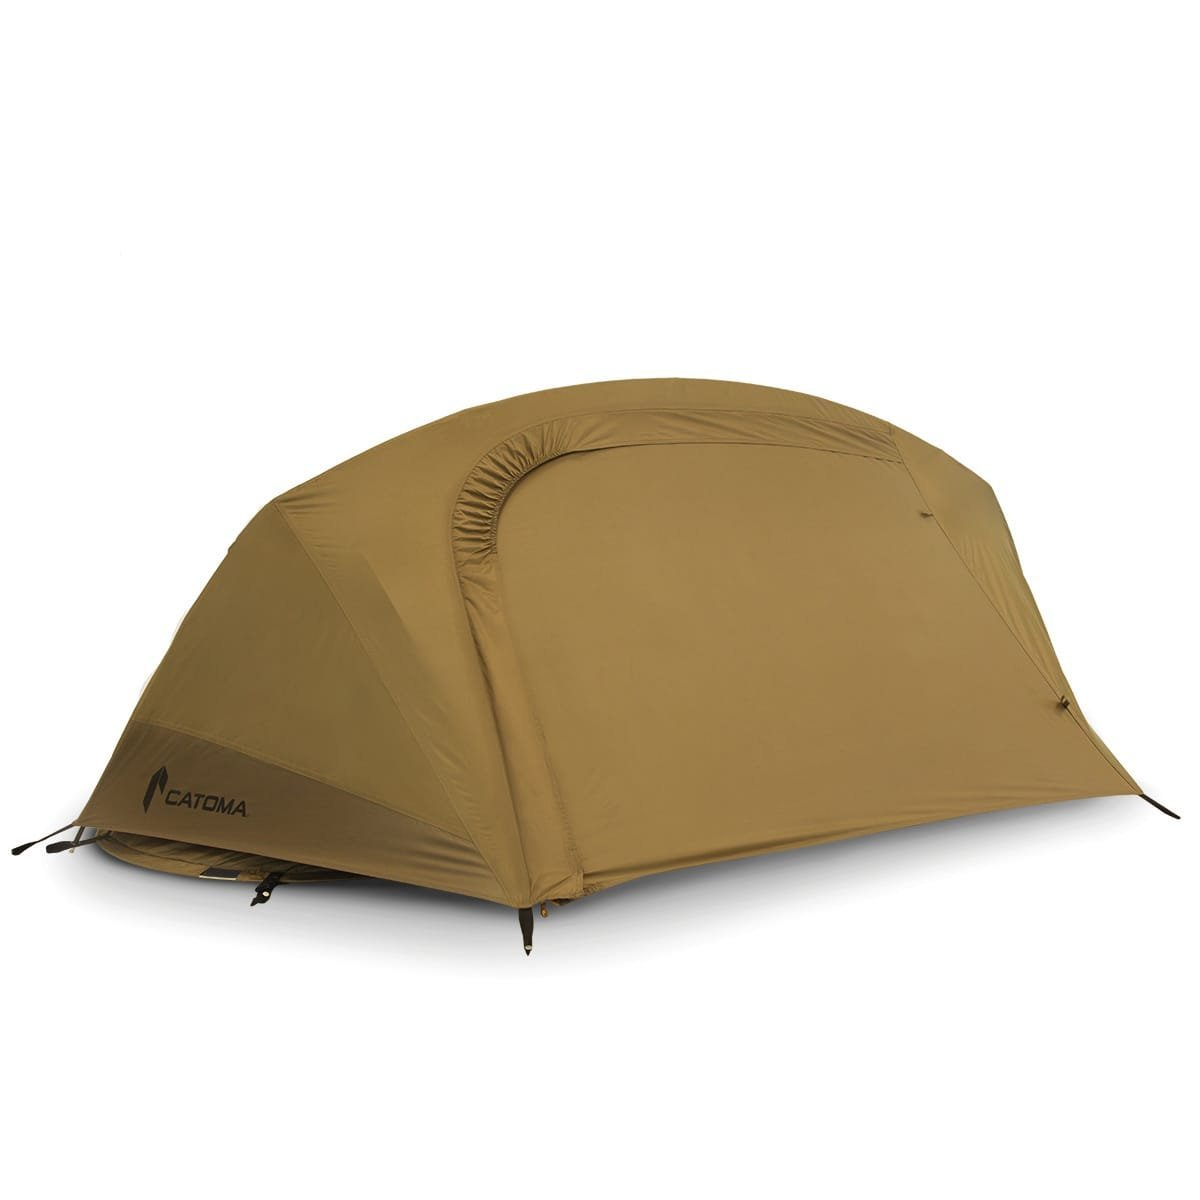 """NEW Catoma Wolverine Rainfly Kit Coyote Brown 98601 68/""""x100/"""" Tactical Shelter"""